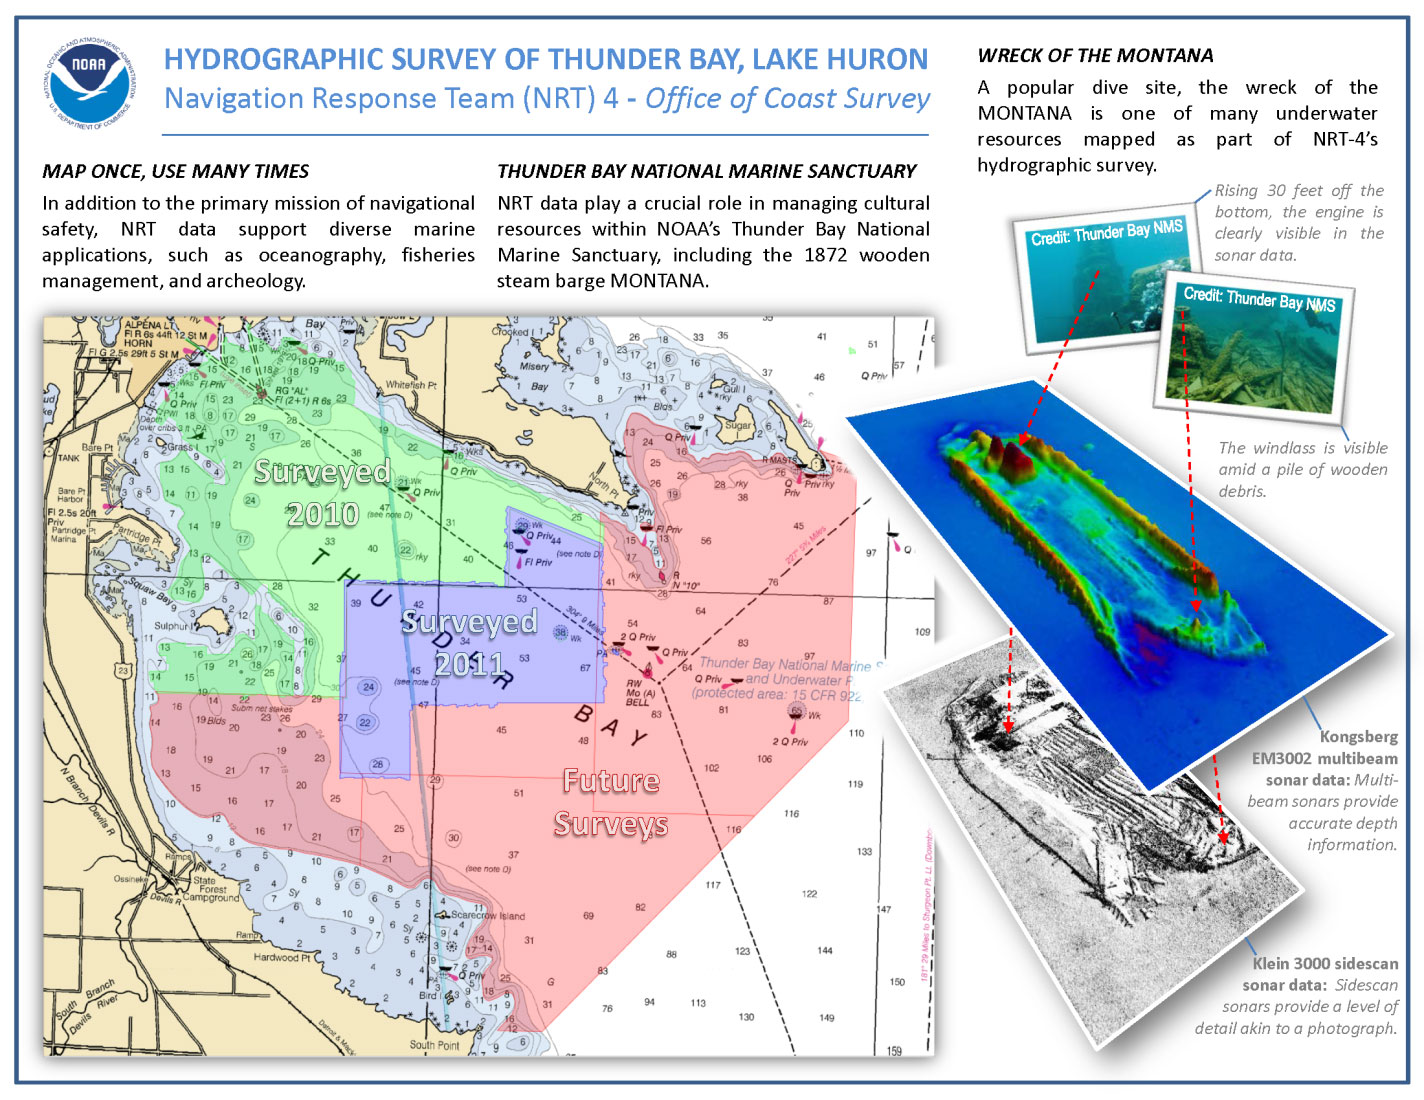 Figure 55. Working with other NOAA offices helps the sanctuary acquire data useful for sanctuary resource management. The data is also shared with a variety of scientists and institutions interested in the natural and ecological aspects of Thunder Bay. (NOAA Office of Coast Survey)